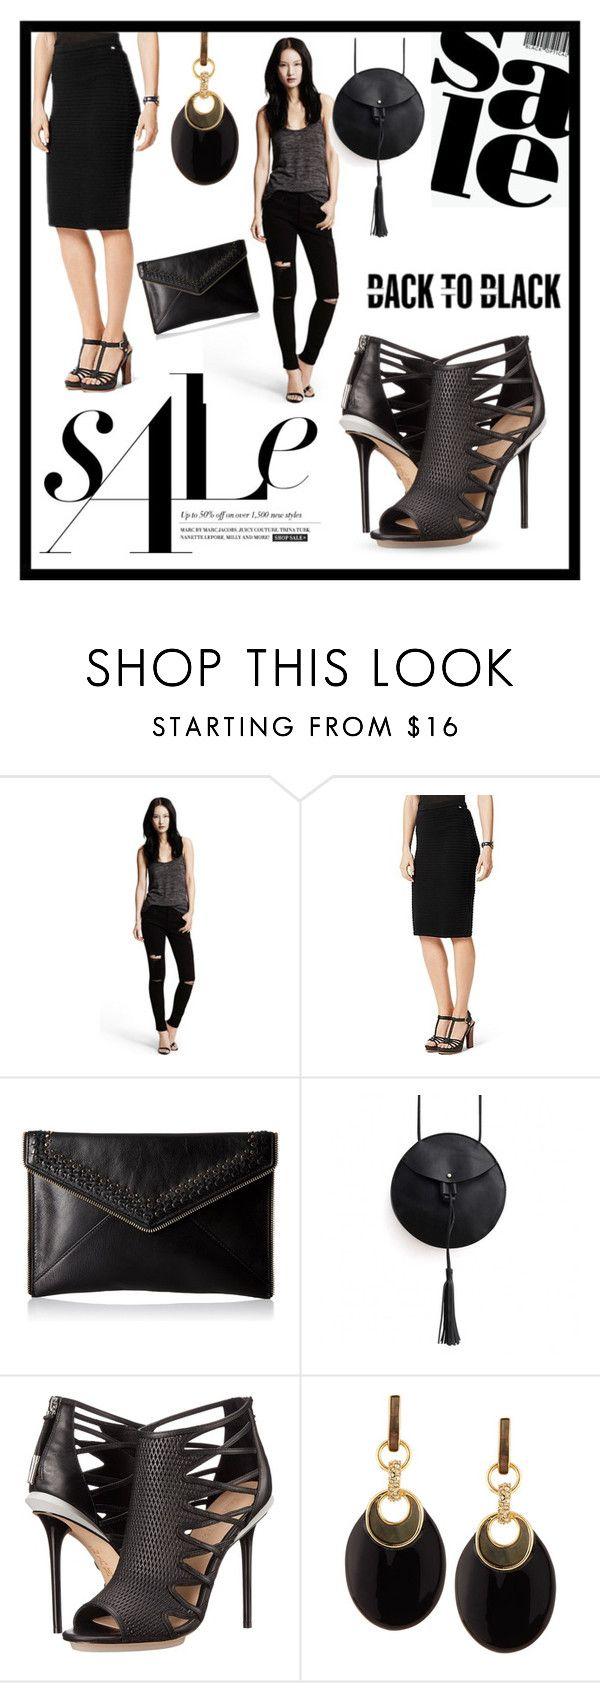 """""""Black on Sale"""" by queenofsienna ❤ liked on Polyvore featuring Clover, Tommy Hilfiger, Rebecca Minkoff, L.A.M.B. and Alexis Bittar"""